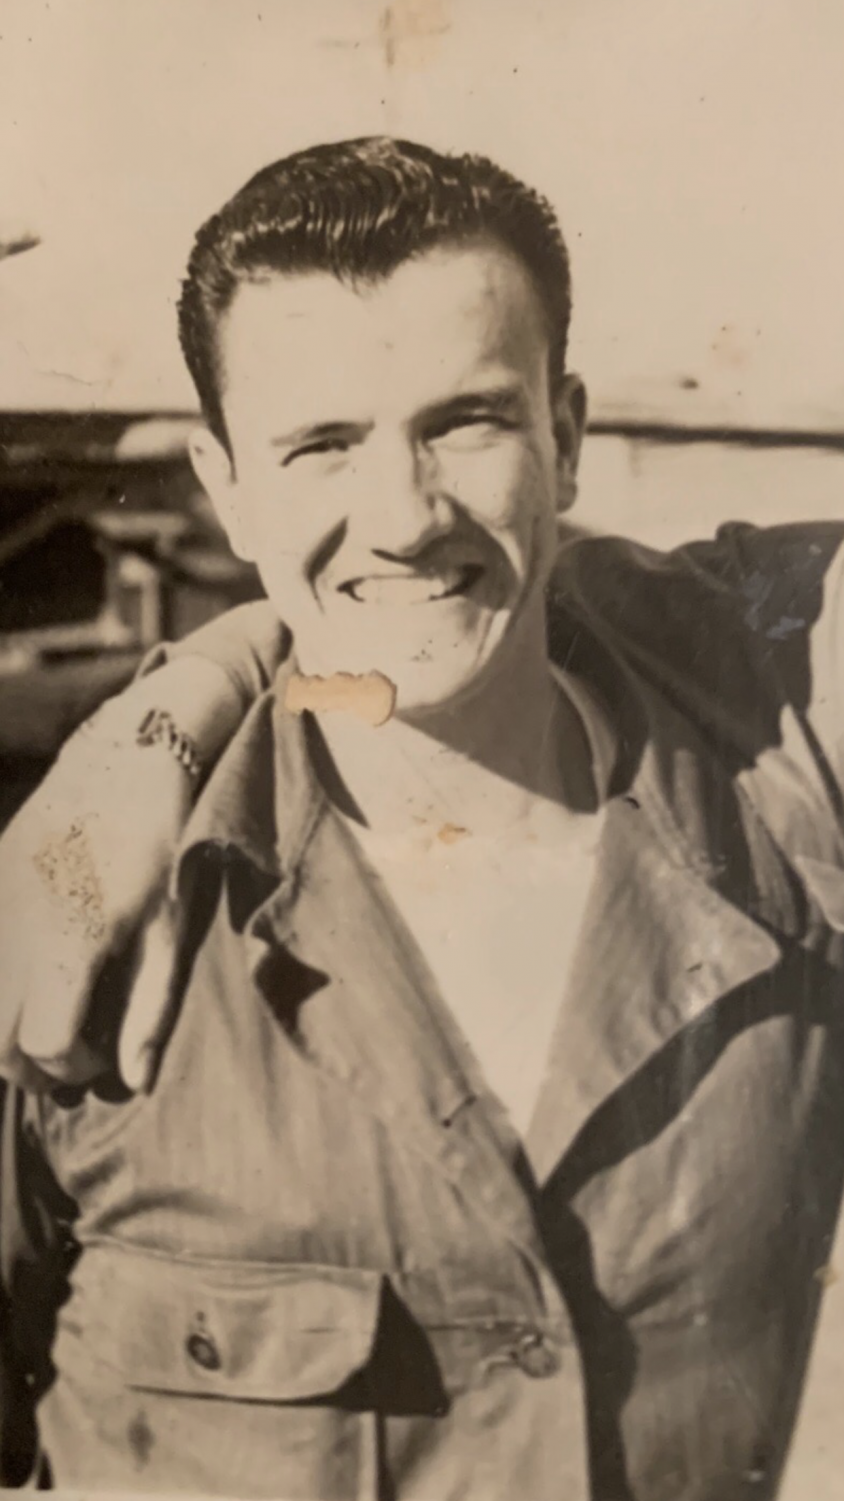 My great grandfather during the time of his service